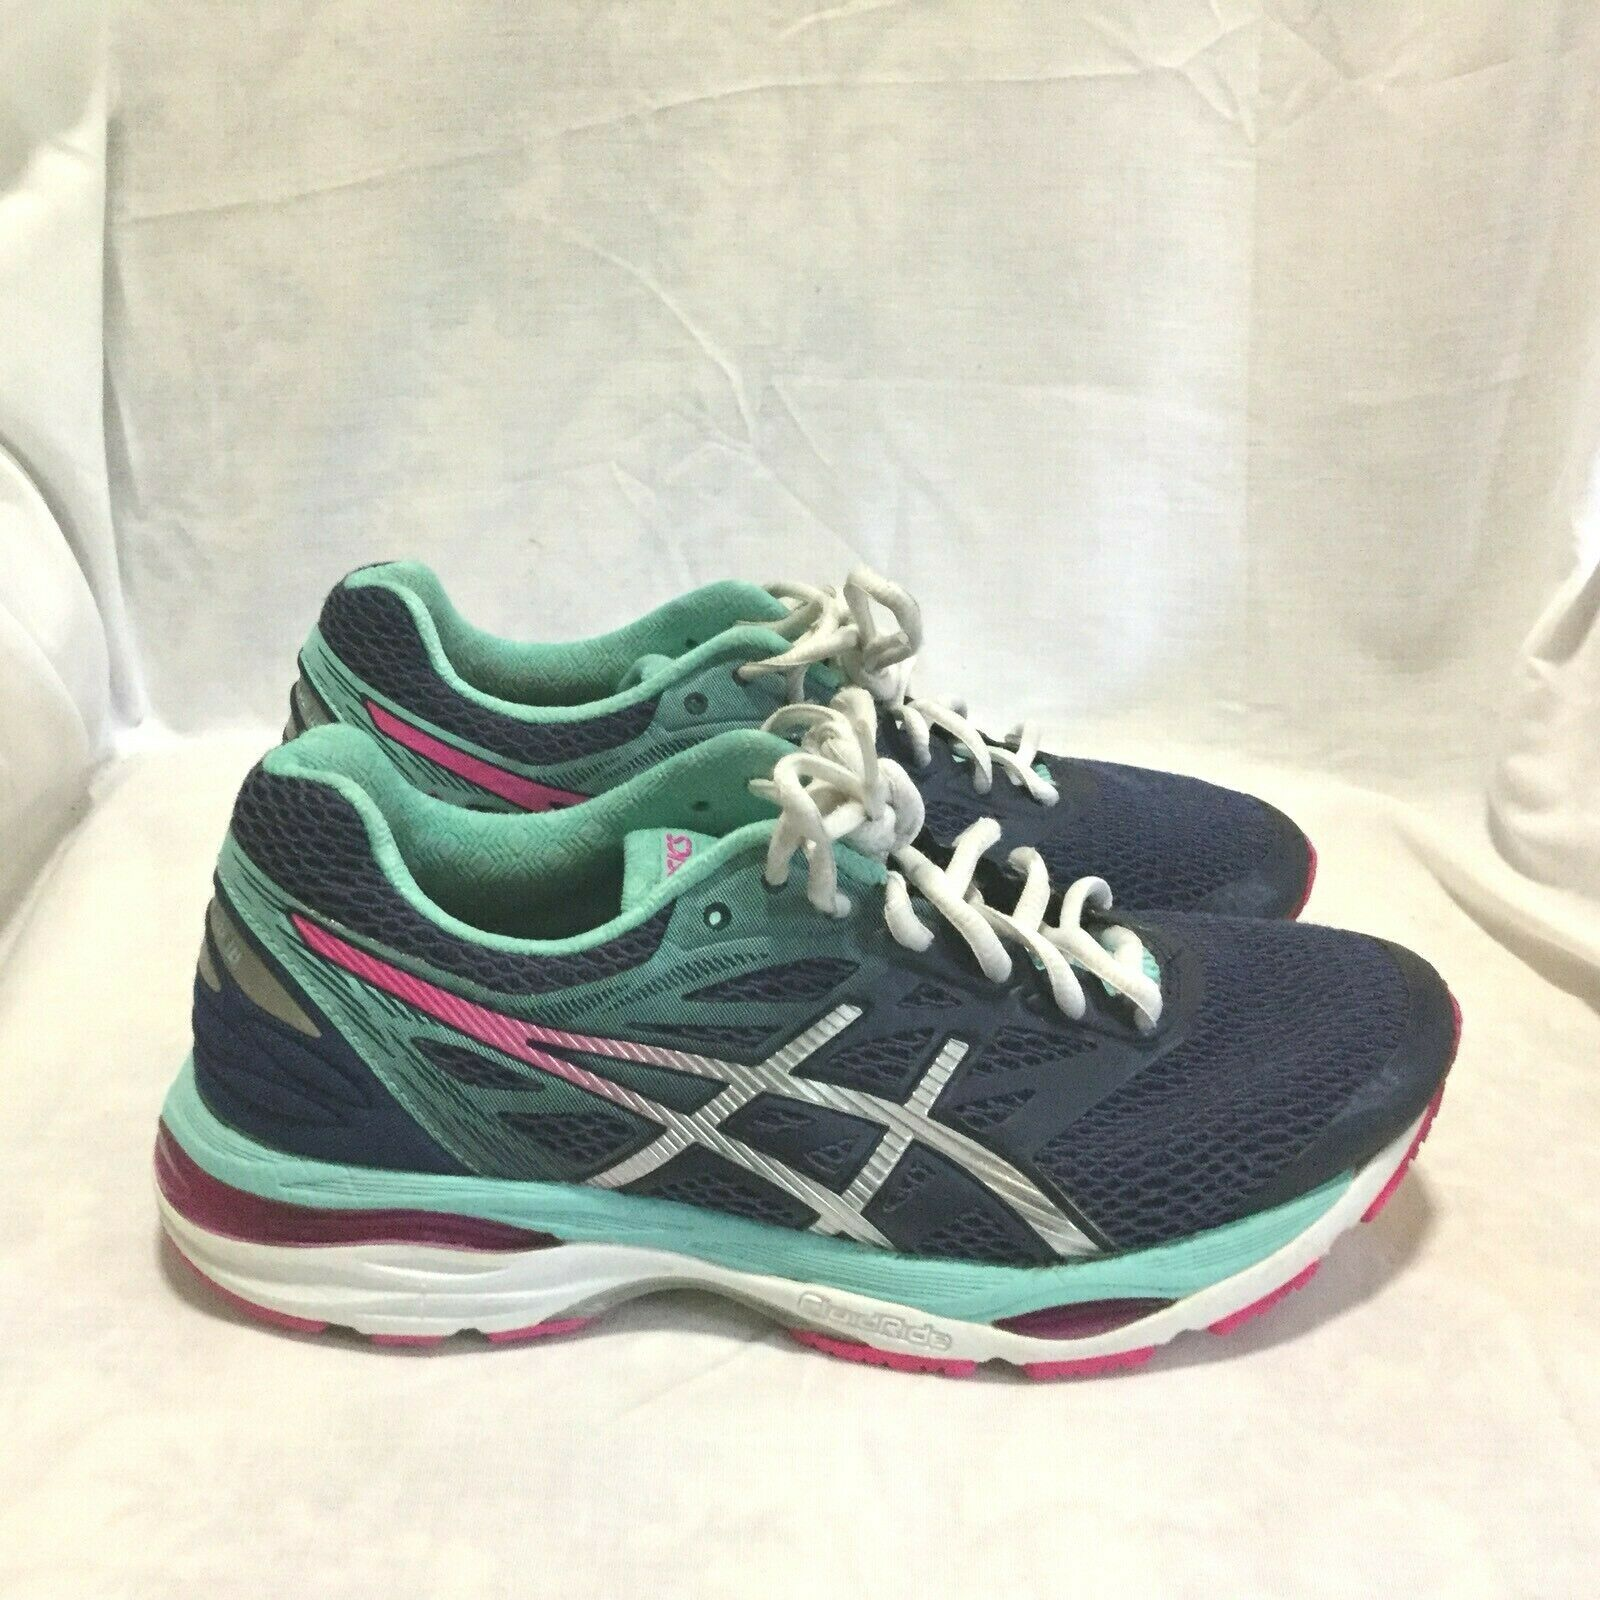 ASICS CUMULUS 18 RUNNING SHOES   MULTI COLOR ( SIZE 8.5 ) WOMEN'S